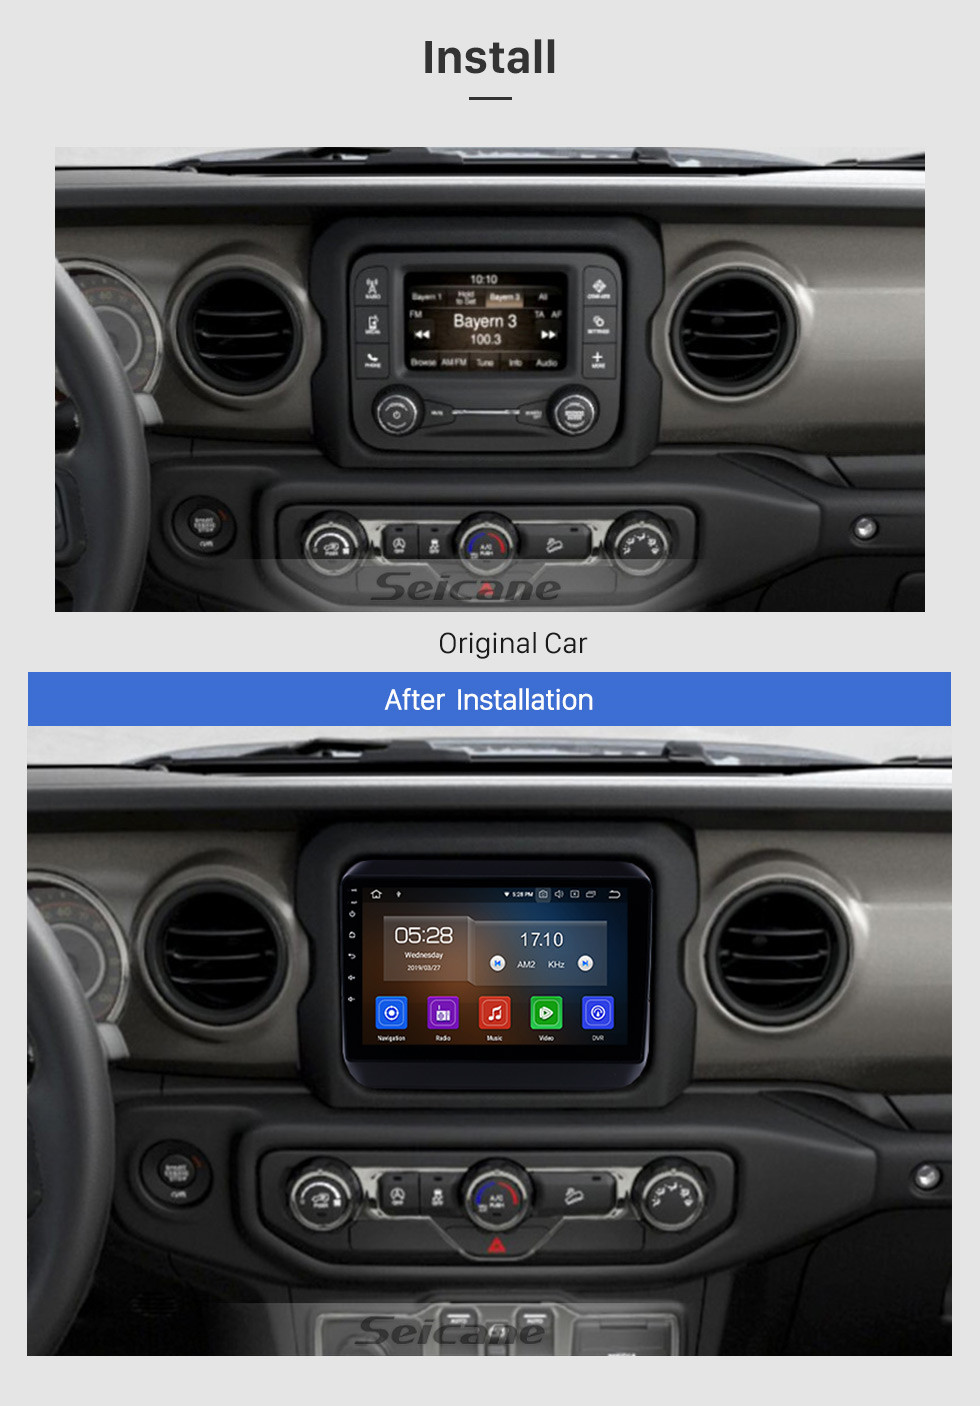 Seicane All in one Android 9.0 GPS Navigation 9 inch HD Touchscreen Stereo for 2018 Jeep Wrangler Rubicon Bluetooth FM WIFI USB Steering Wheel Control USB Carplay AUX support DVR OBD2